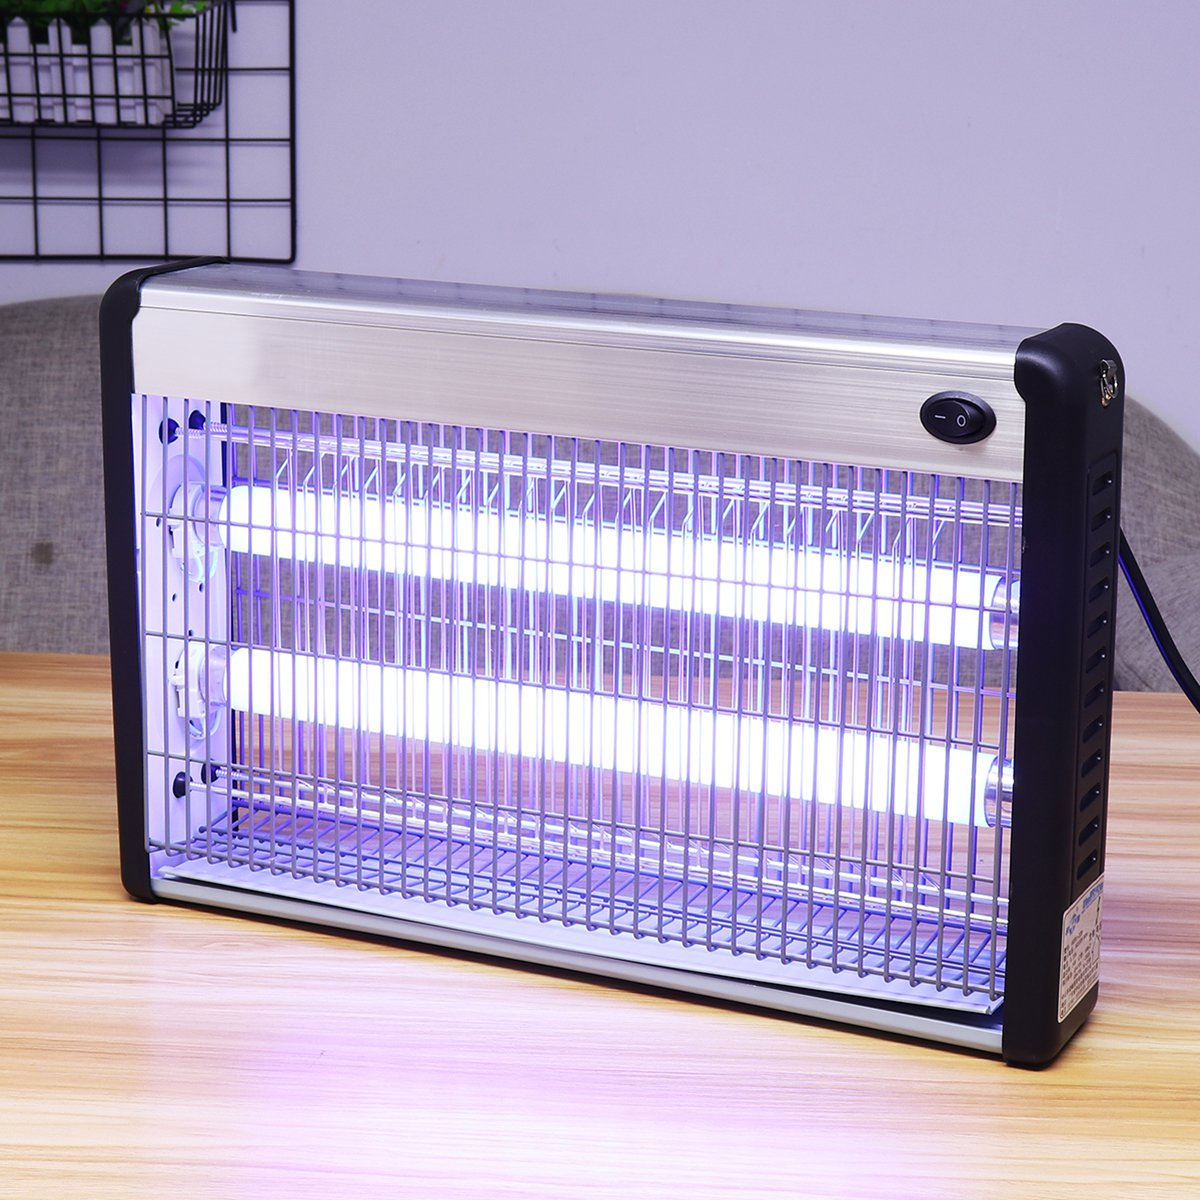 20/30/40W Electric Insect Killer LED UV-A Electronics Mosquito Repeller Pest Fly Bug Zapper Catcher Traps Home Pest Control Lamp